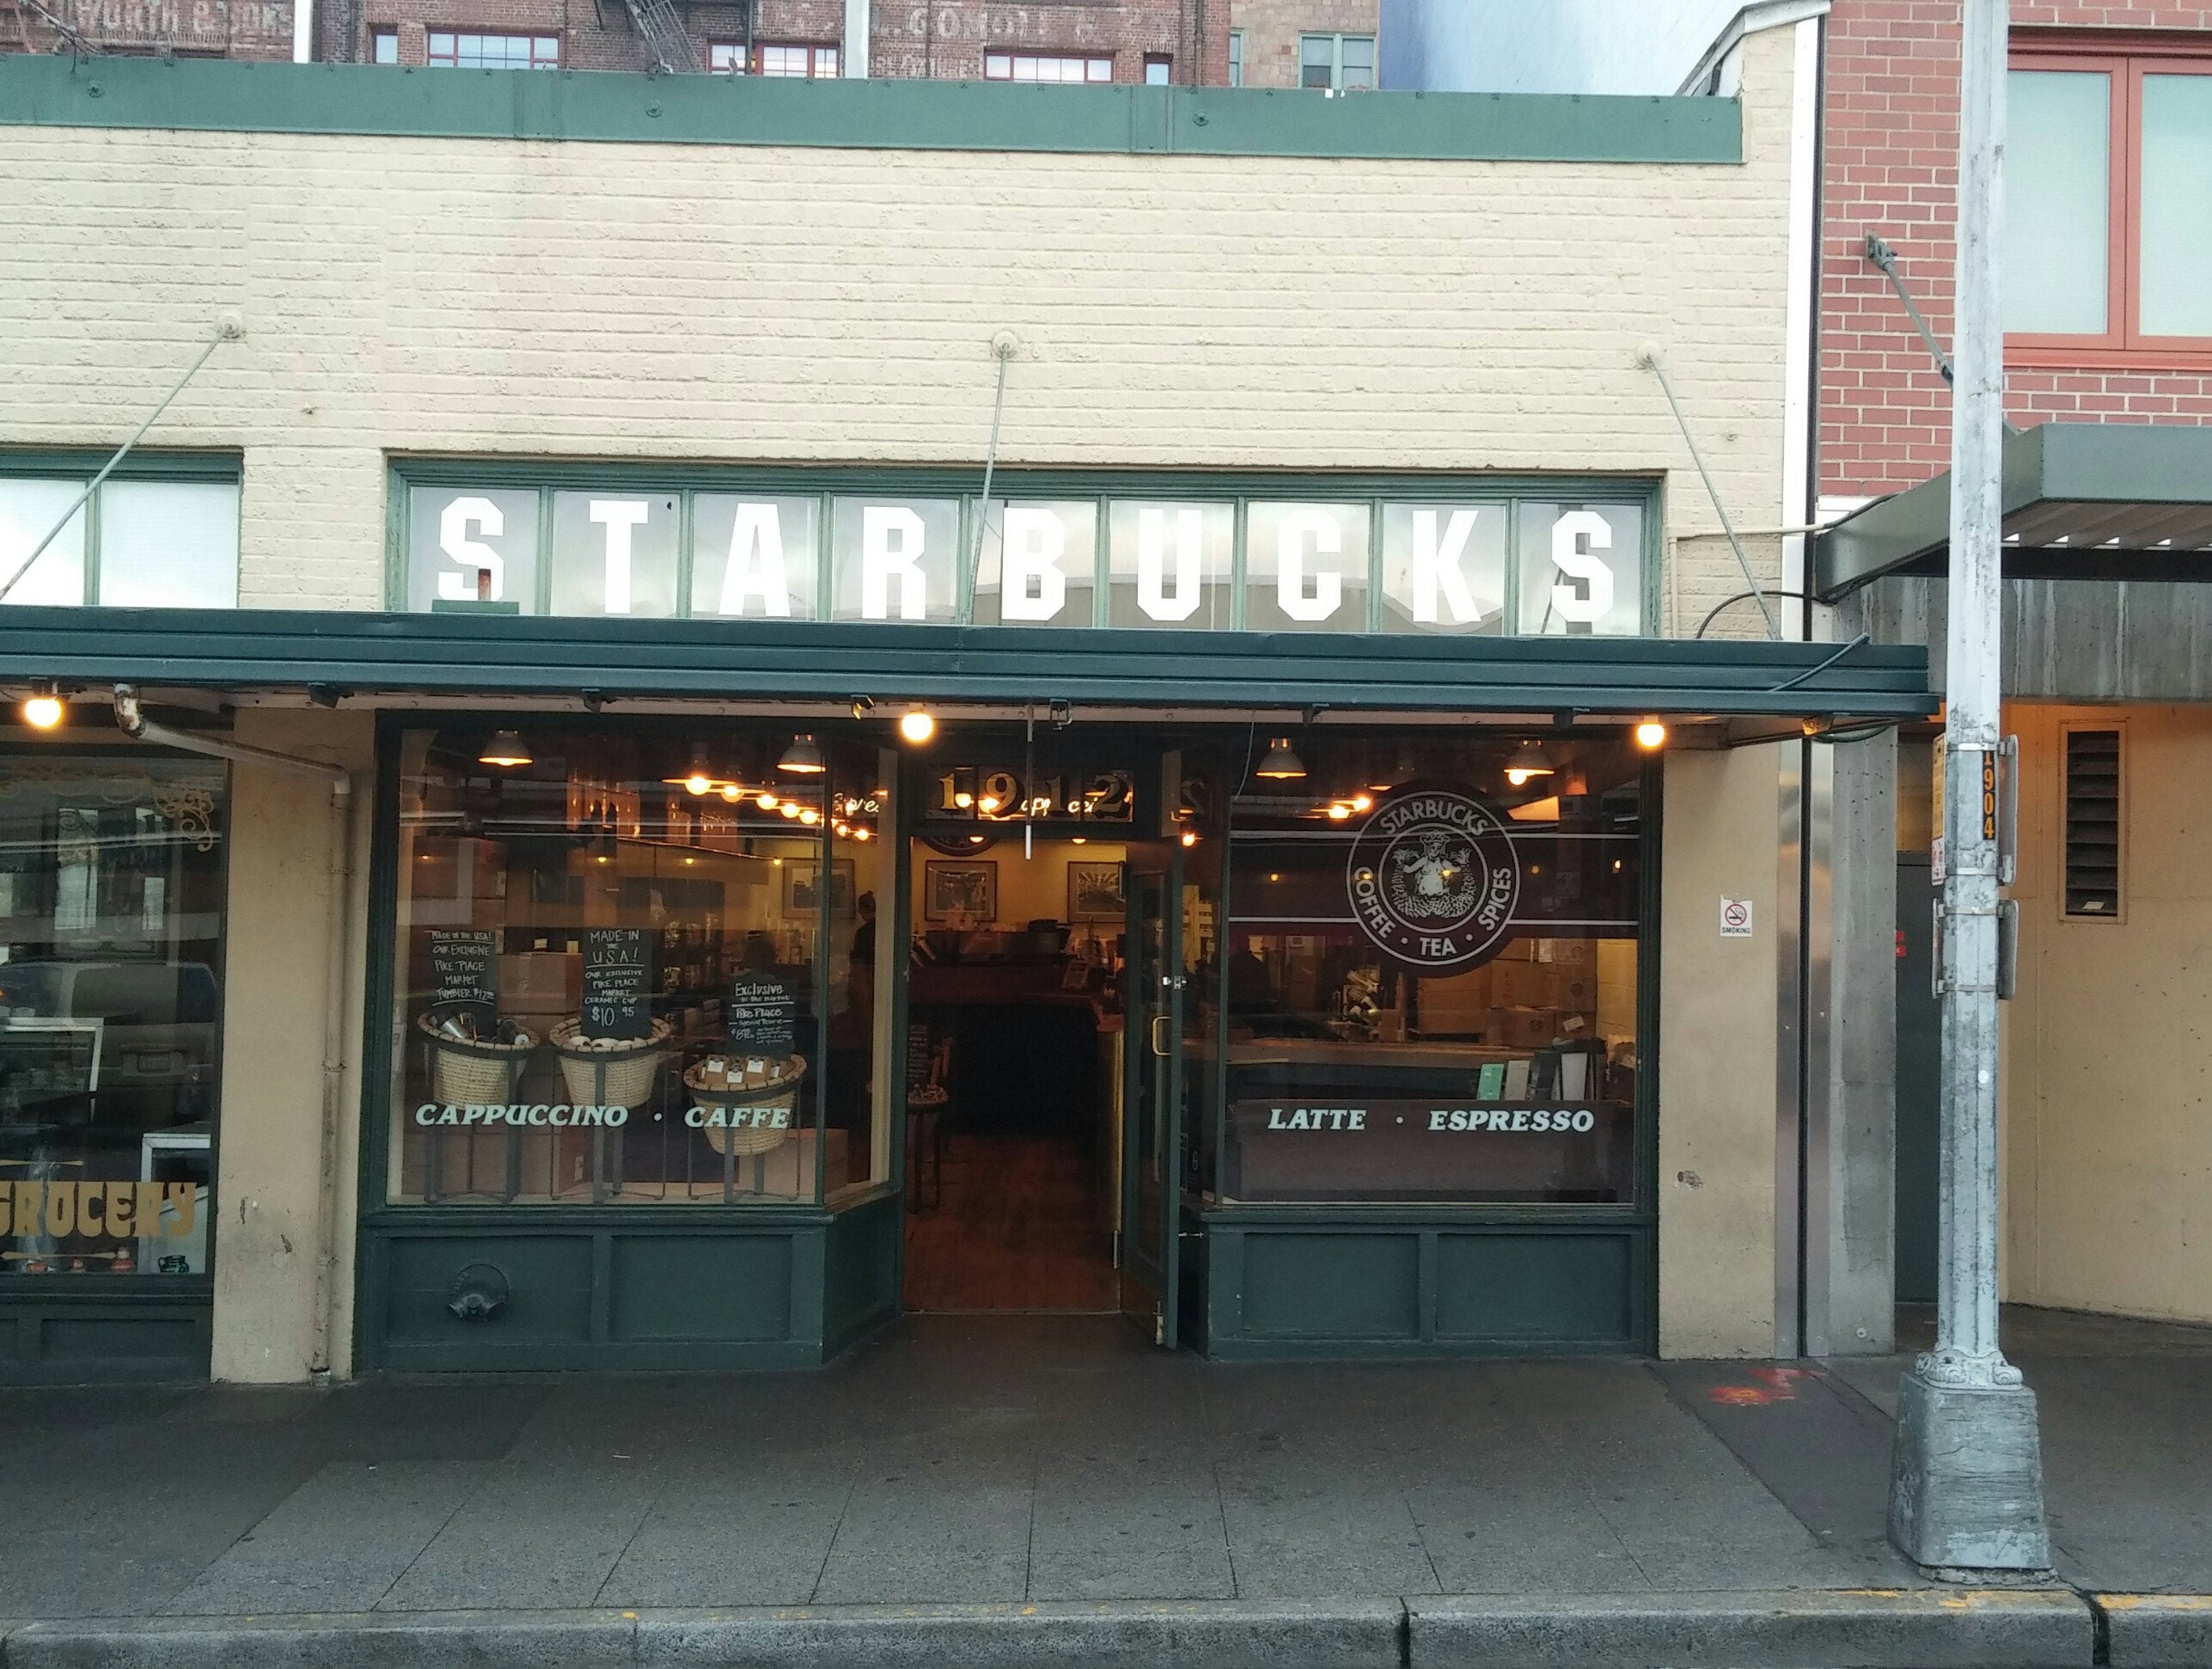 Think Seattle's Only Claim to Fame Is Starbucks? Think Again.